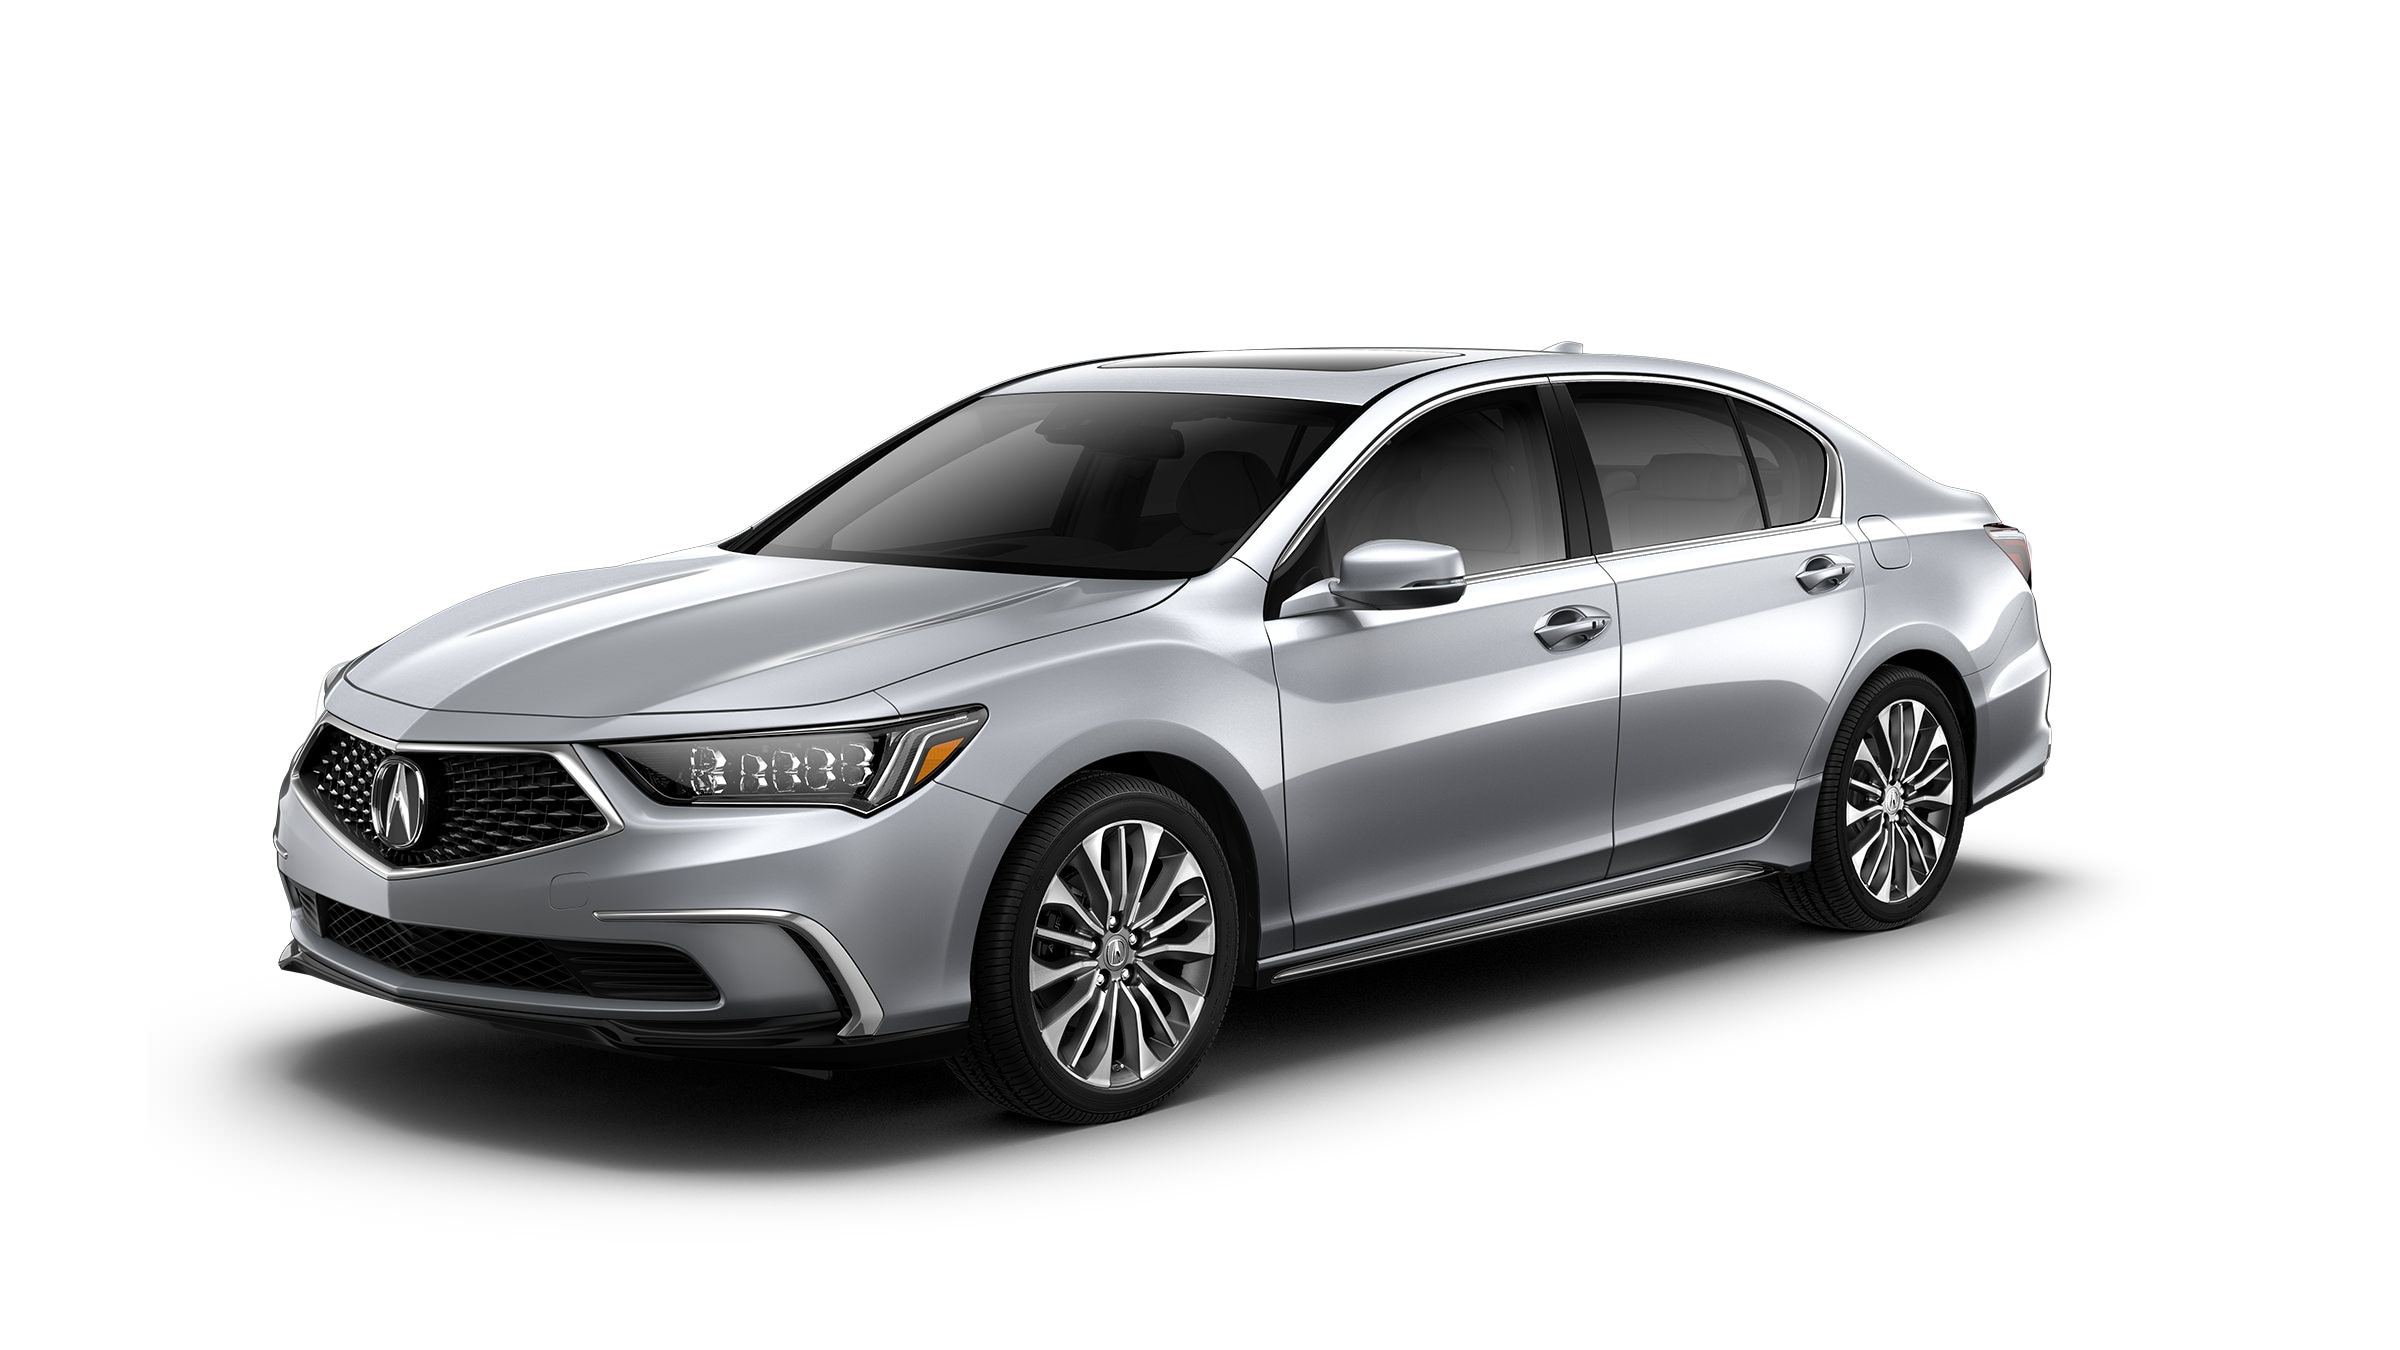 Current Car Offers Lease Deals Acuracom - Acura rdx lease prices paid